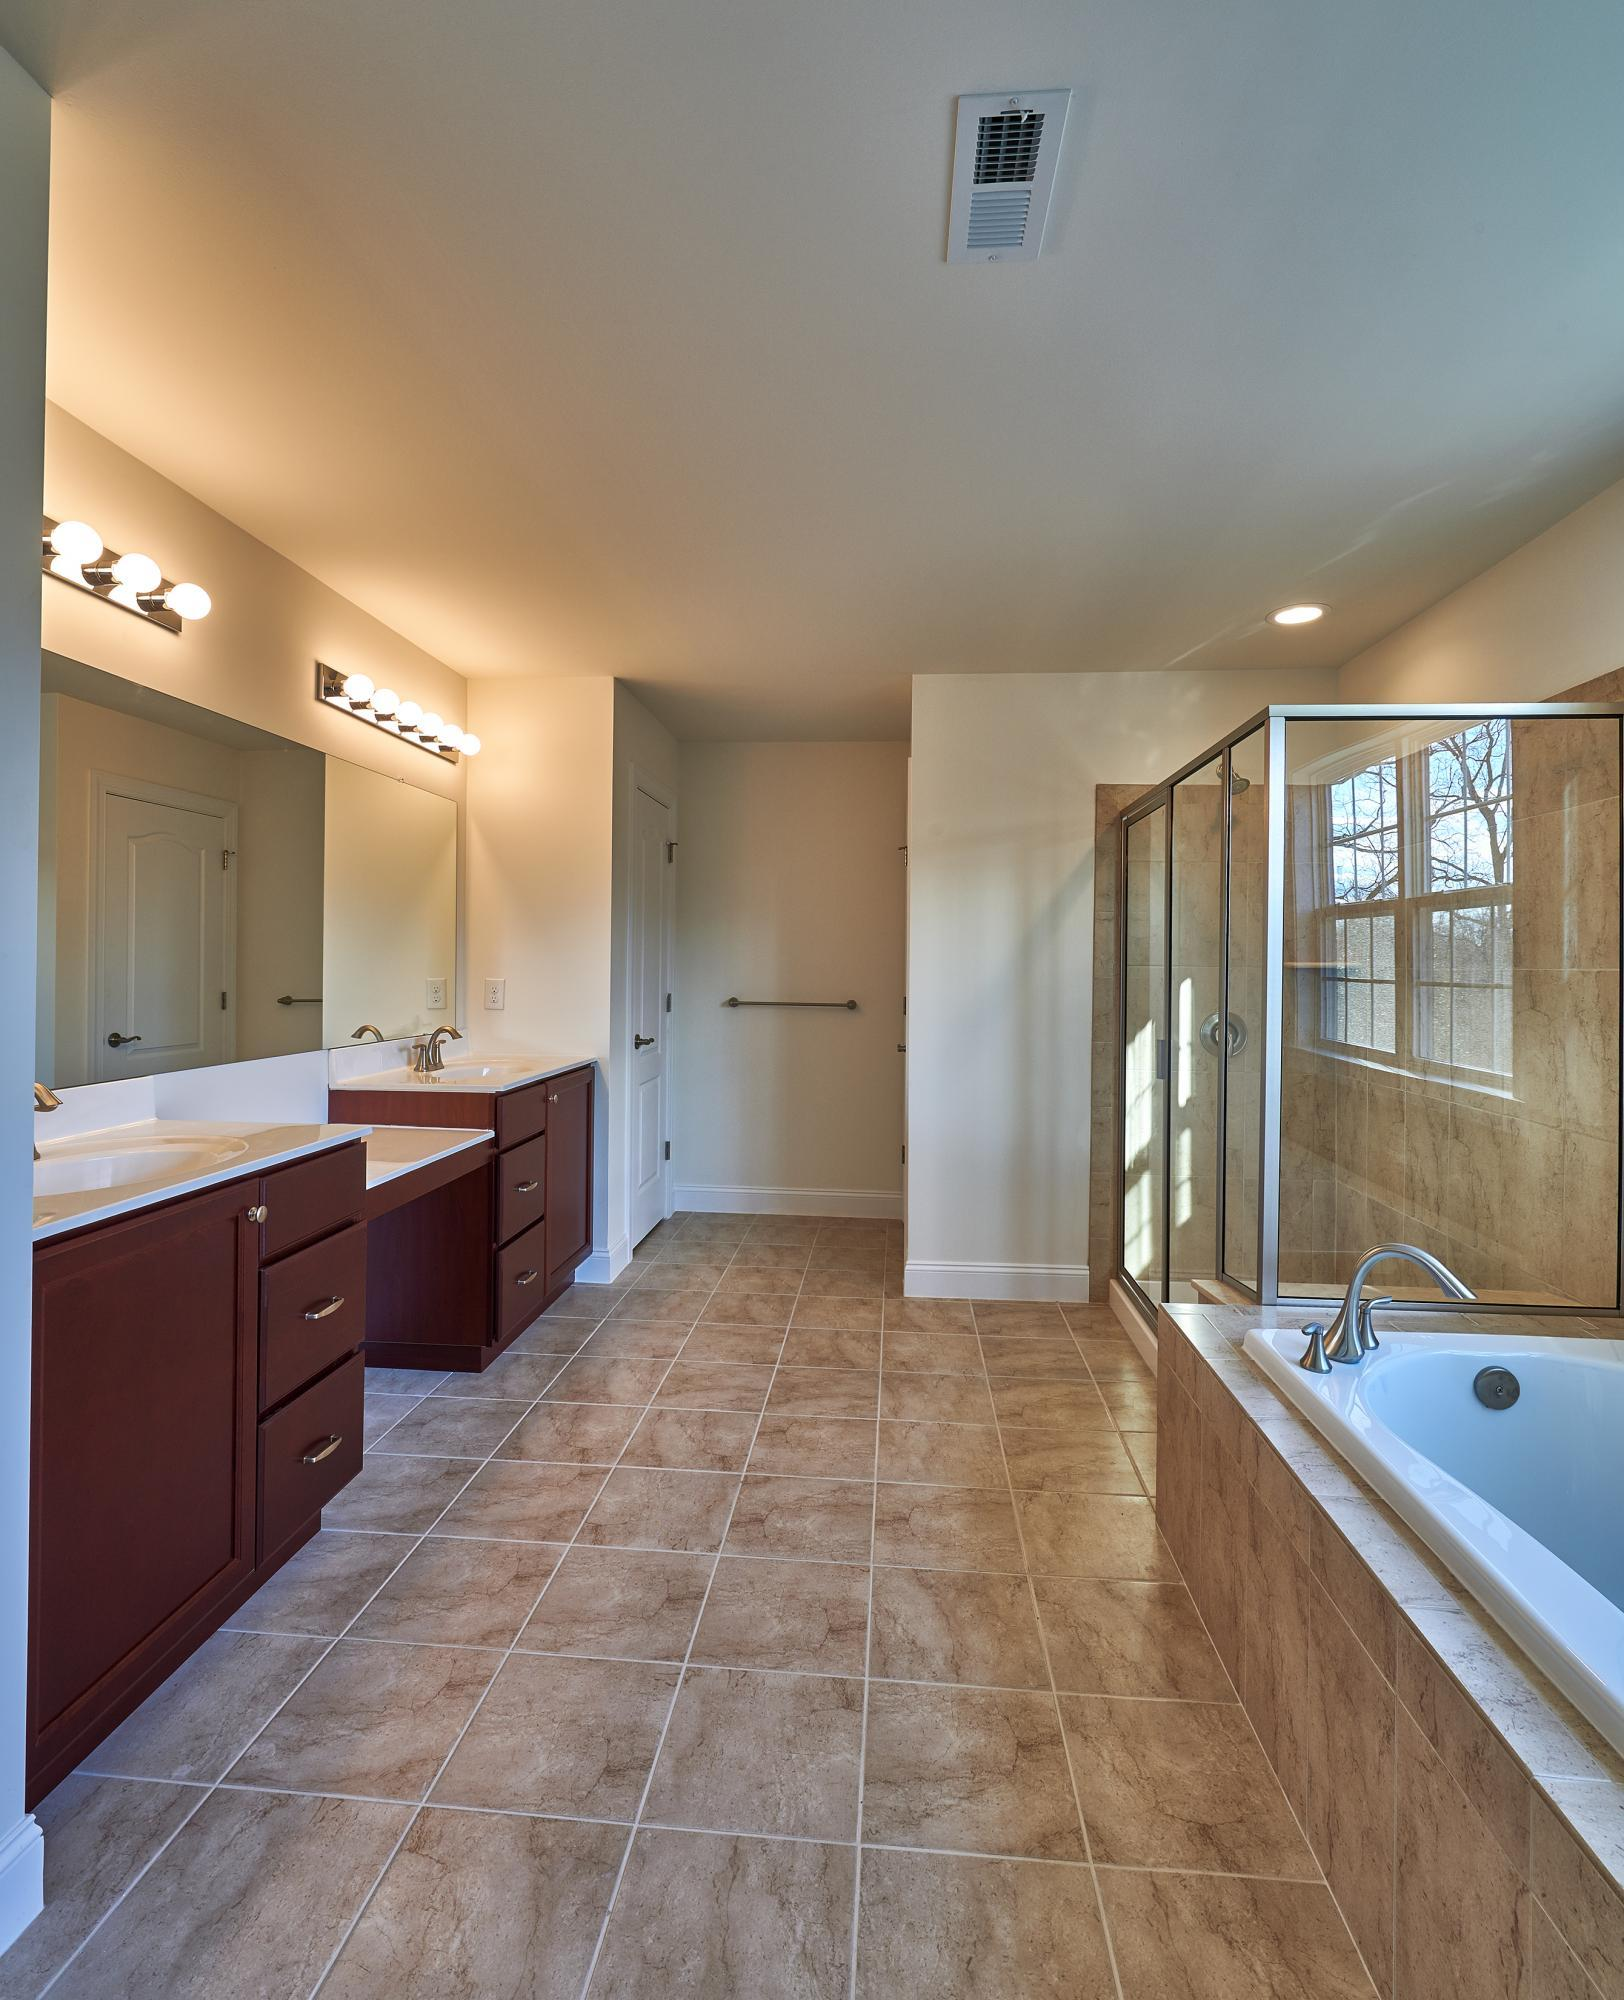 Bathroom featured in The Greenbrier By Hallmark Homes Group in Philadelphia, PA